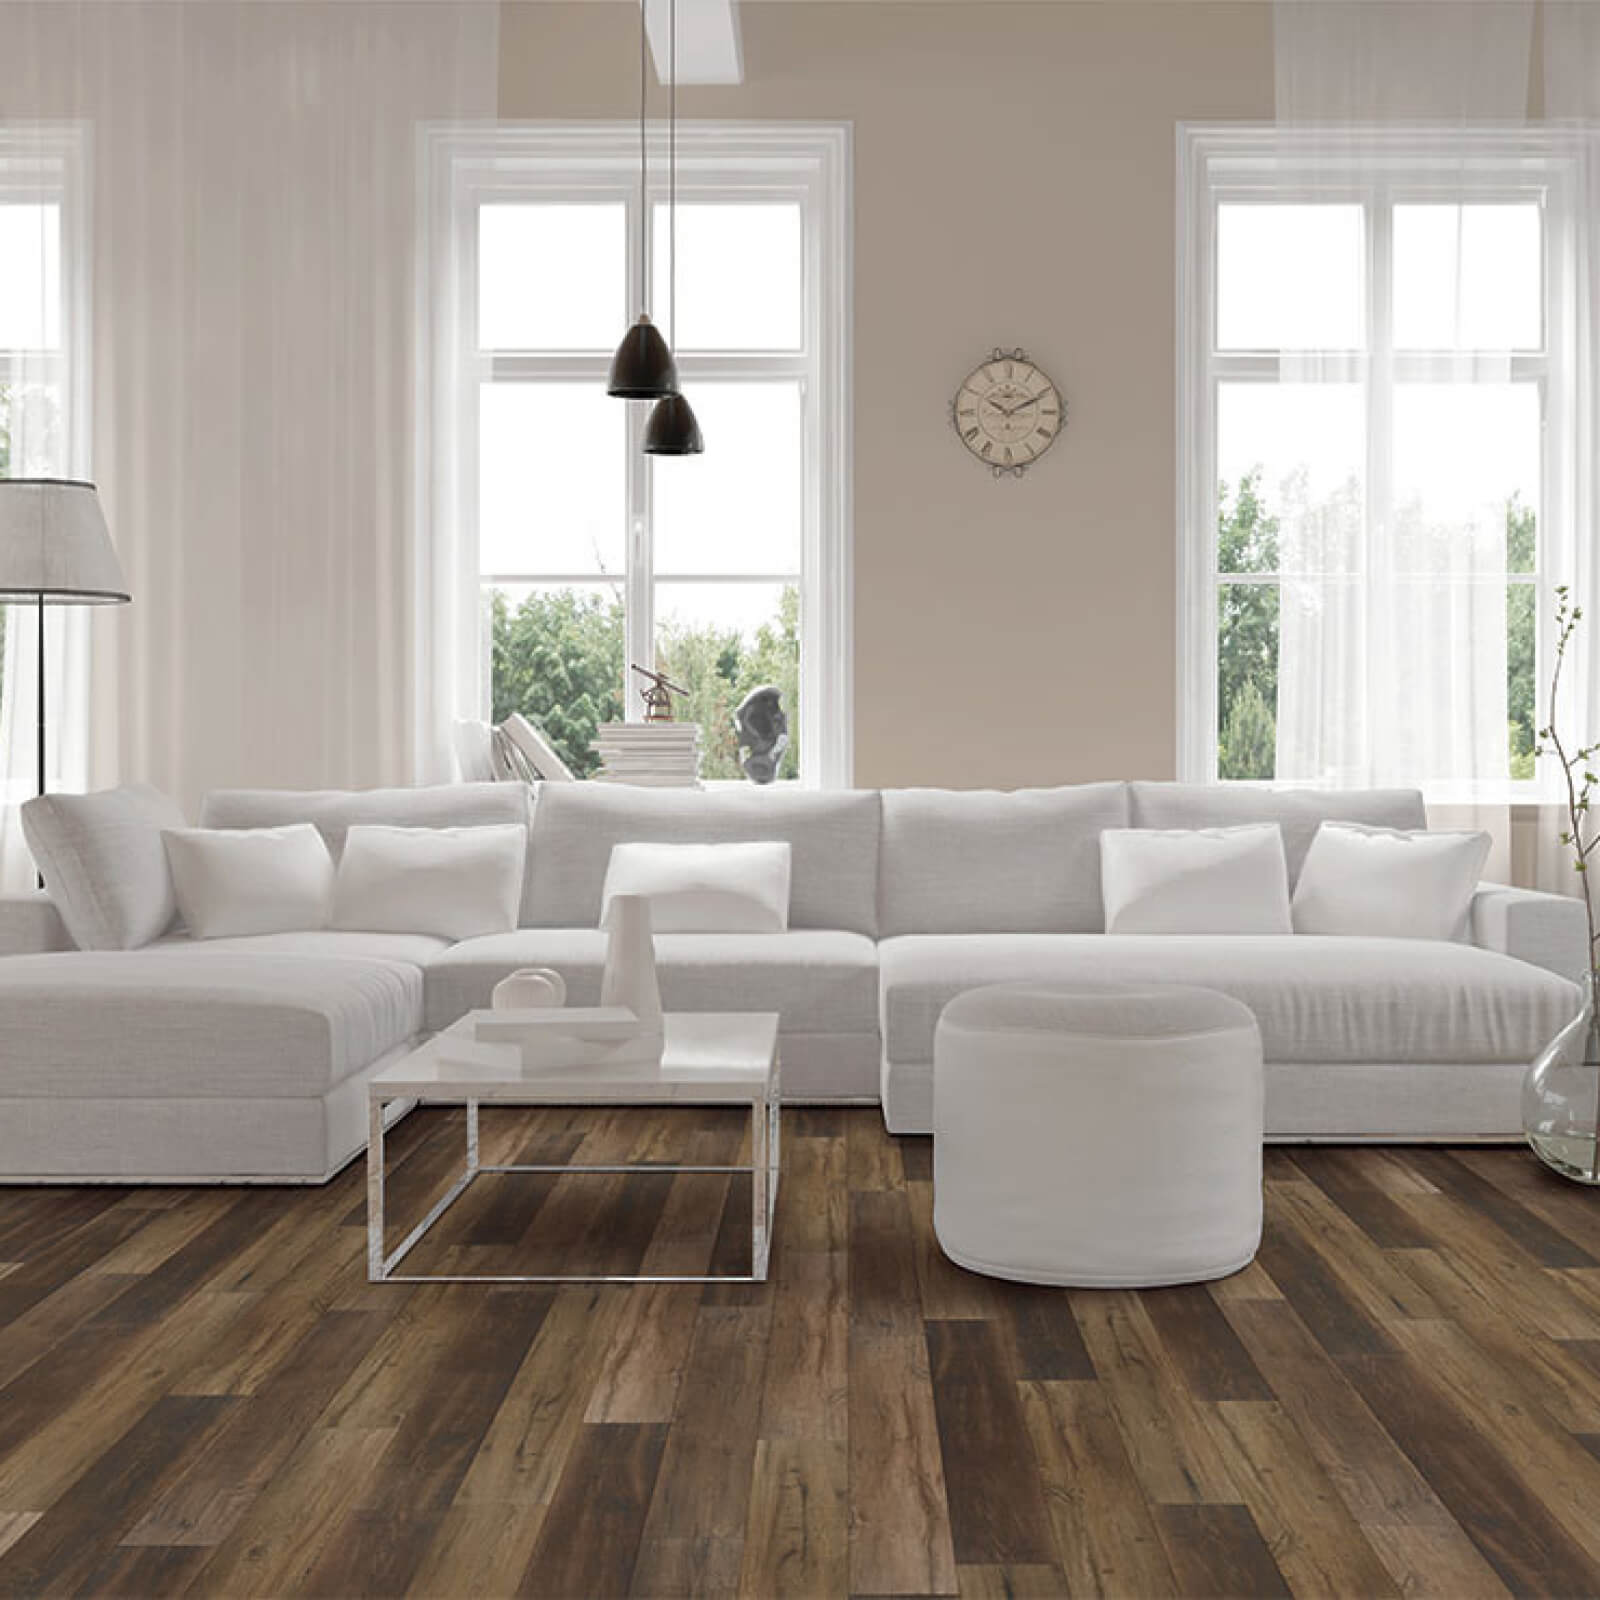 White interior | Floors by Roberts